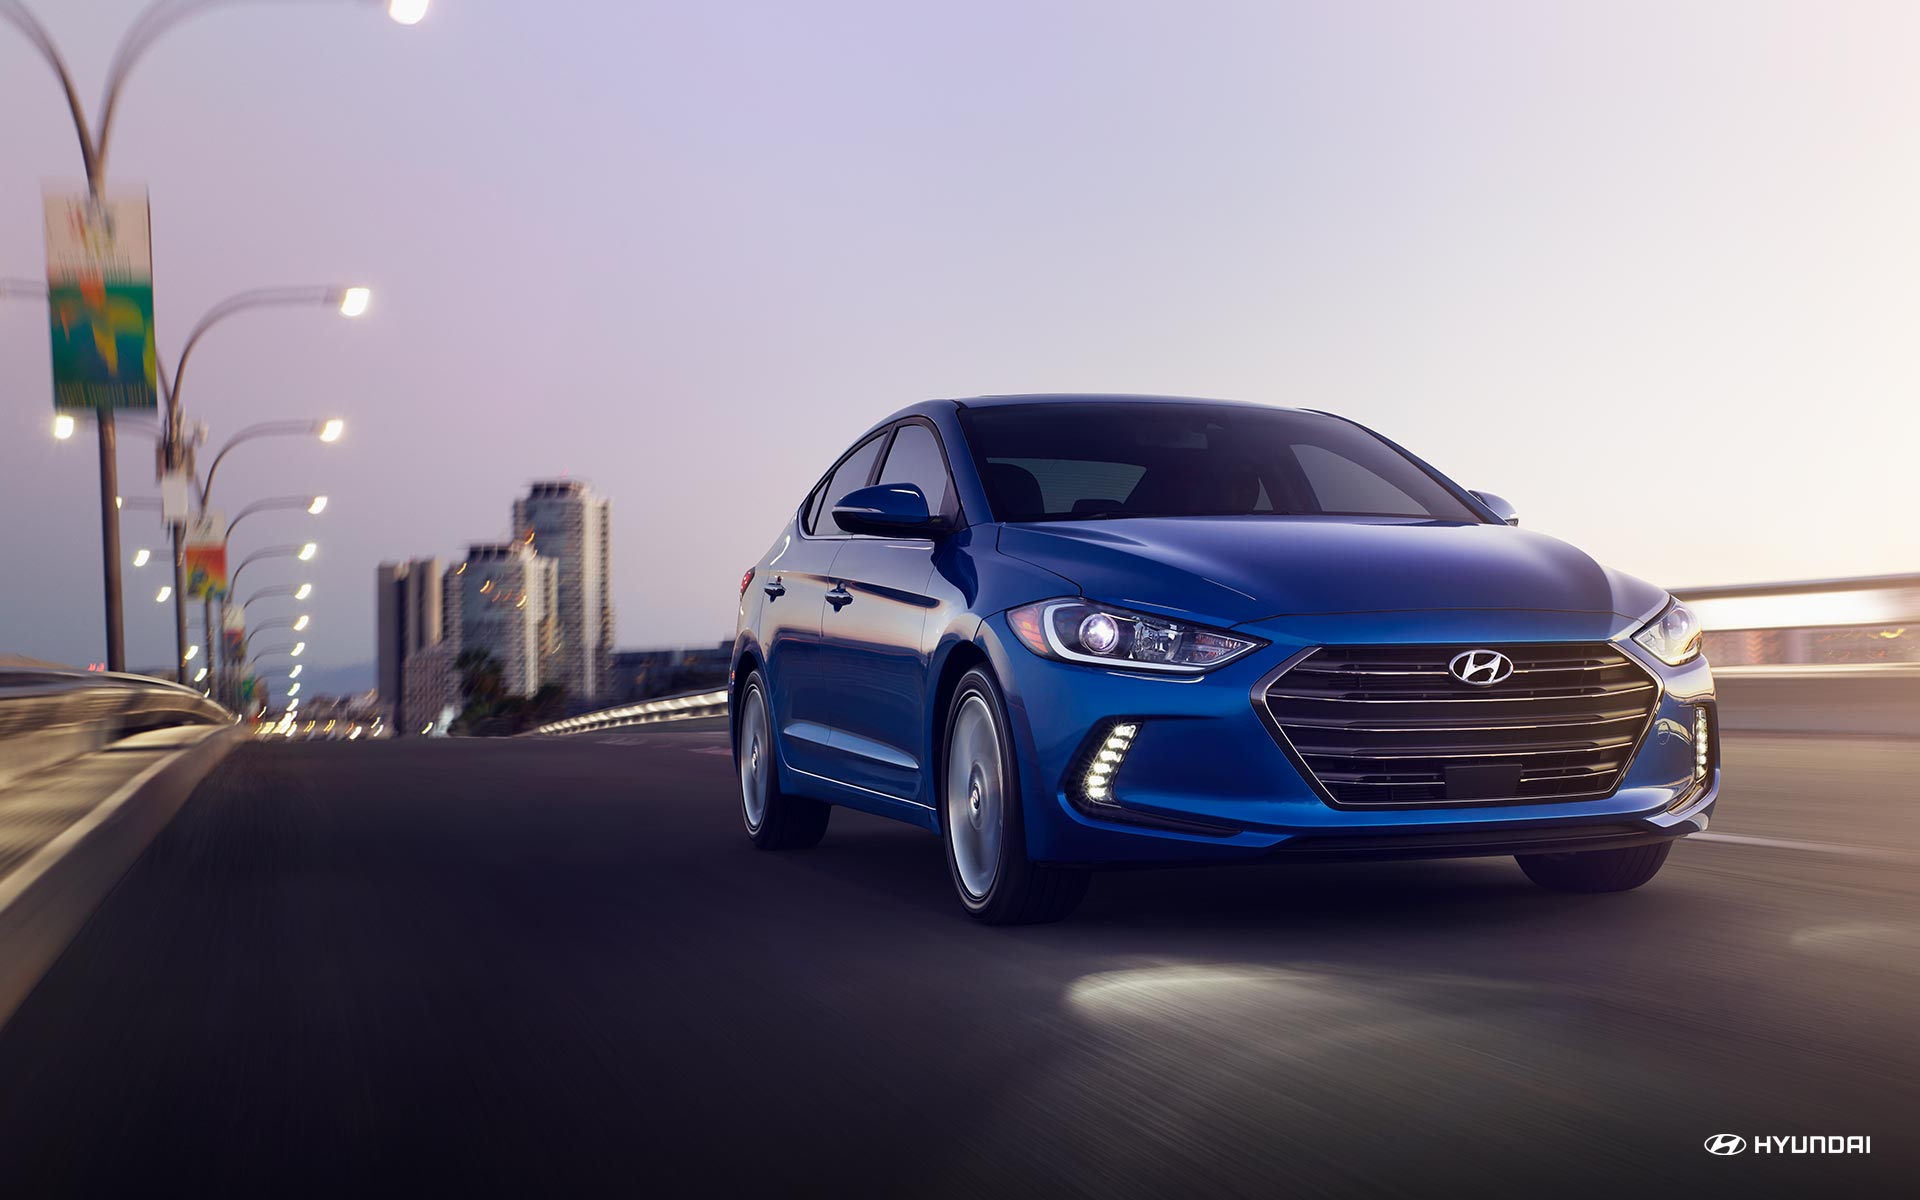 2018-Hyundai-Elantra-hd-wallpaper-2018-Hyundai-Elantra-blue-color-on-road-images